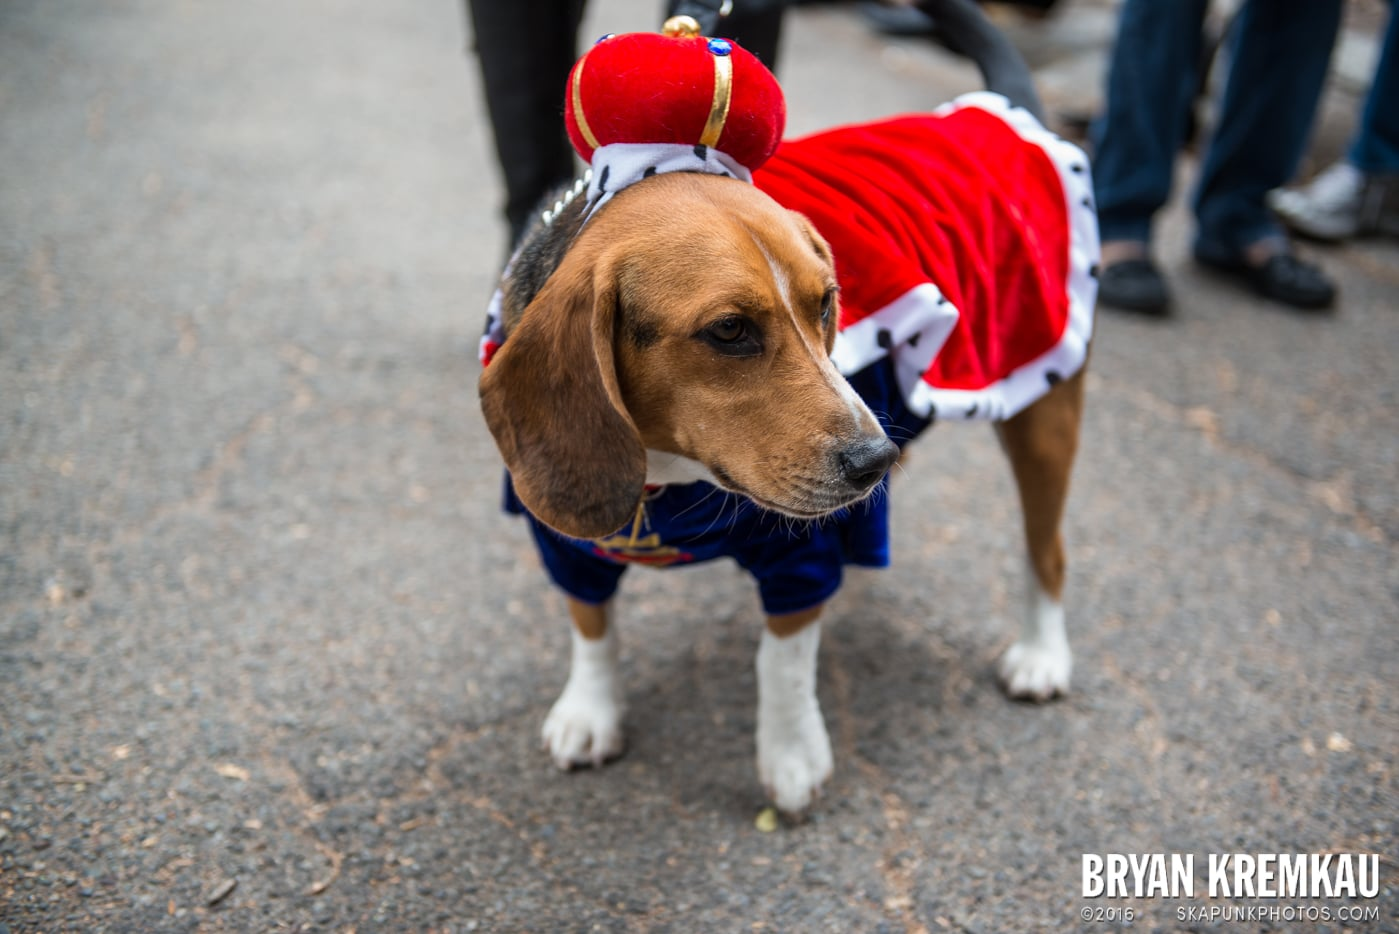 Tompkins Square Halloween Dog Parade 2015 @ Tompkins Square Park, NYC – 10.24.15 (20)